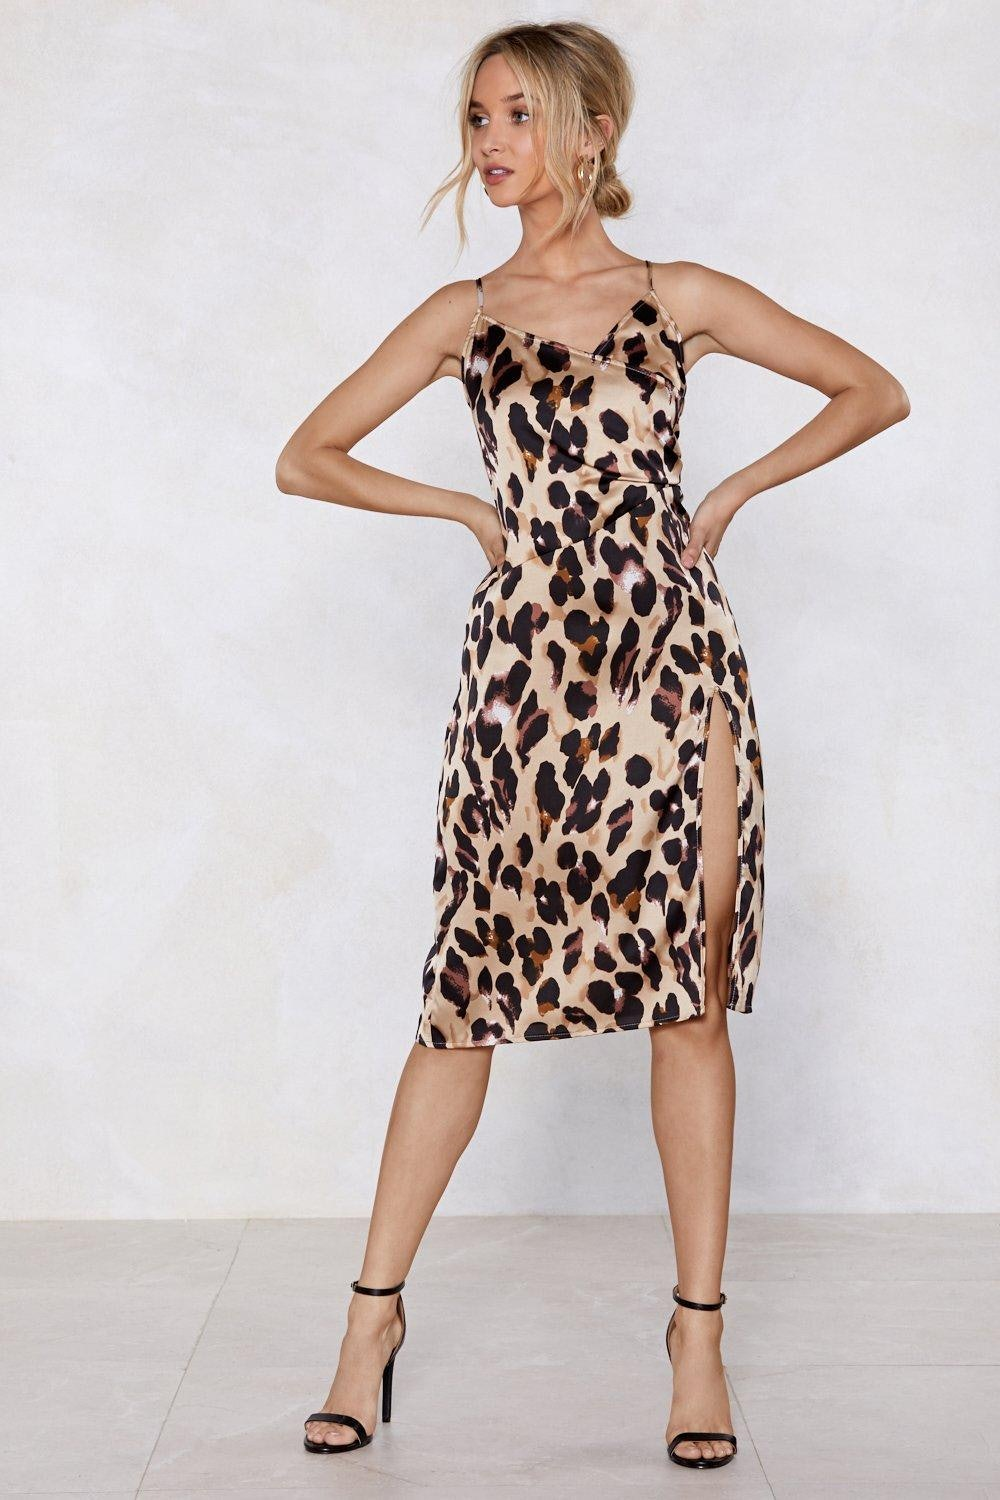 10 Leopard Print Dresses To Make Your Summer Style Extra Purrrfect 72bbed823